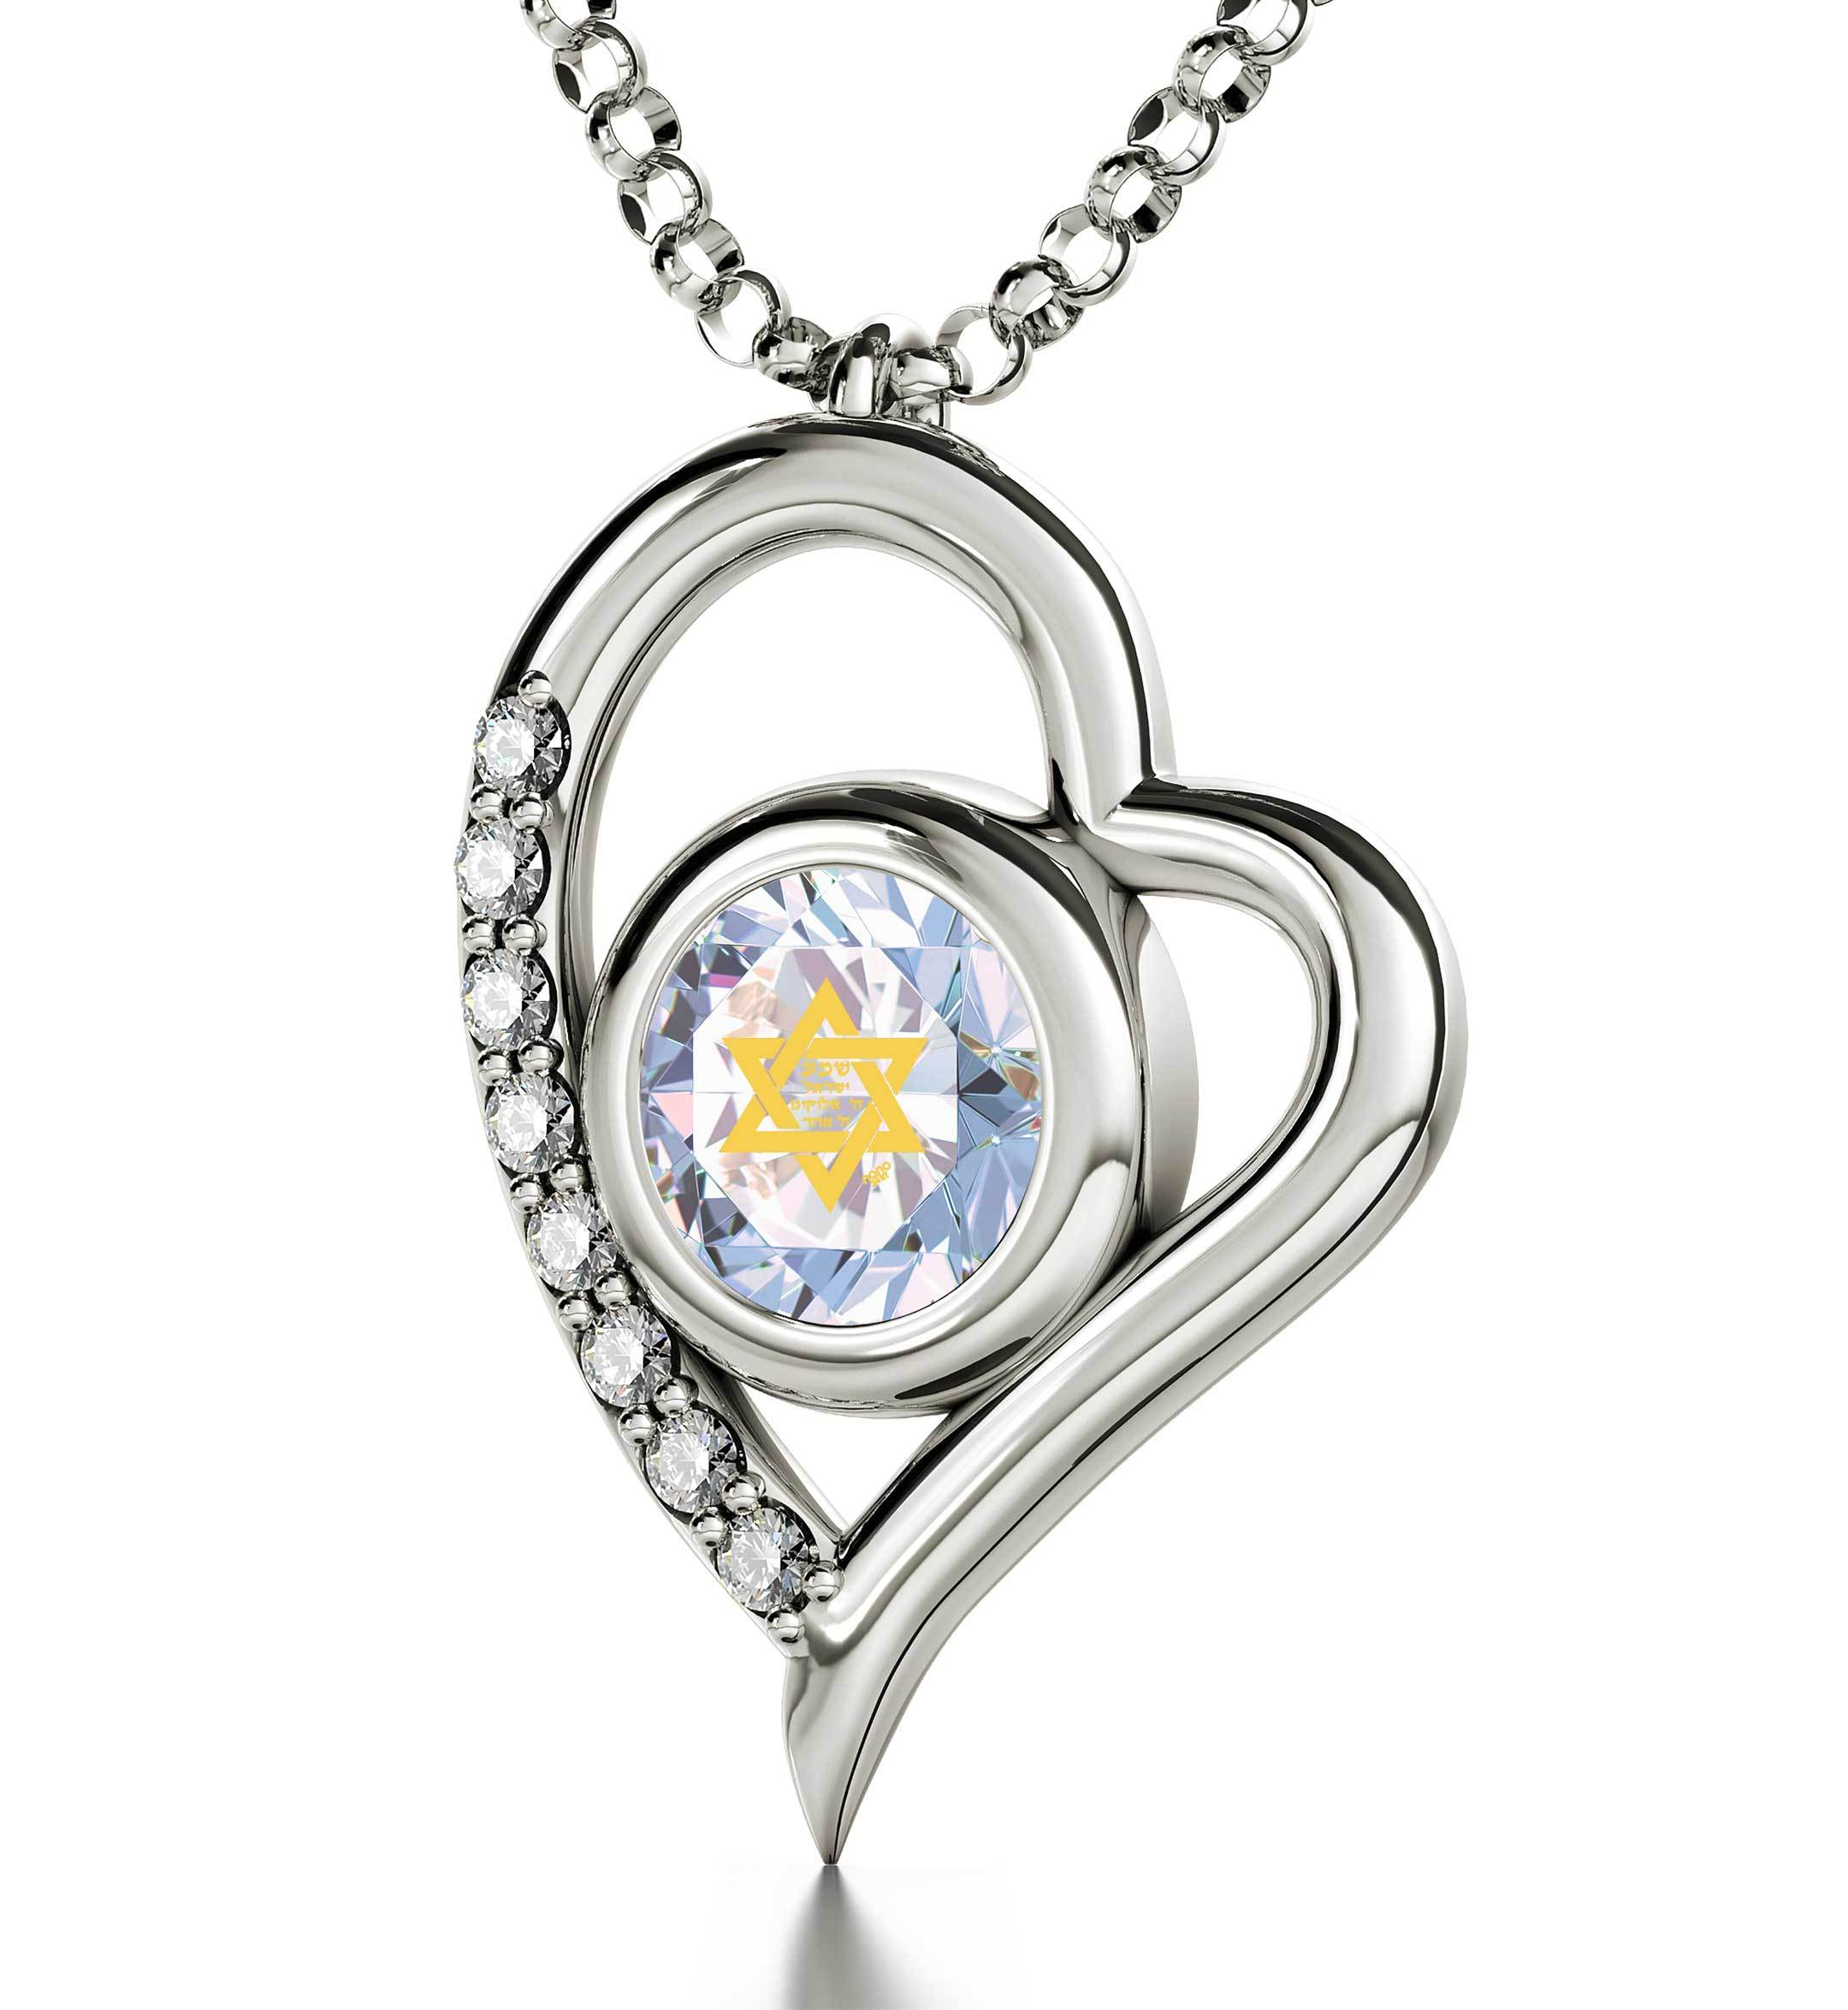 """Shema Yisrael"" Engraved in 24k, Judaica Jewelry with Swarovski Crystal Pendant, Jewish Store, Heart Shaped Necklace"